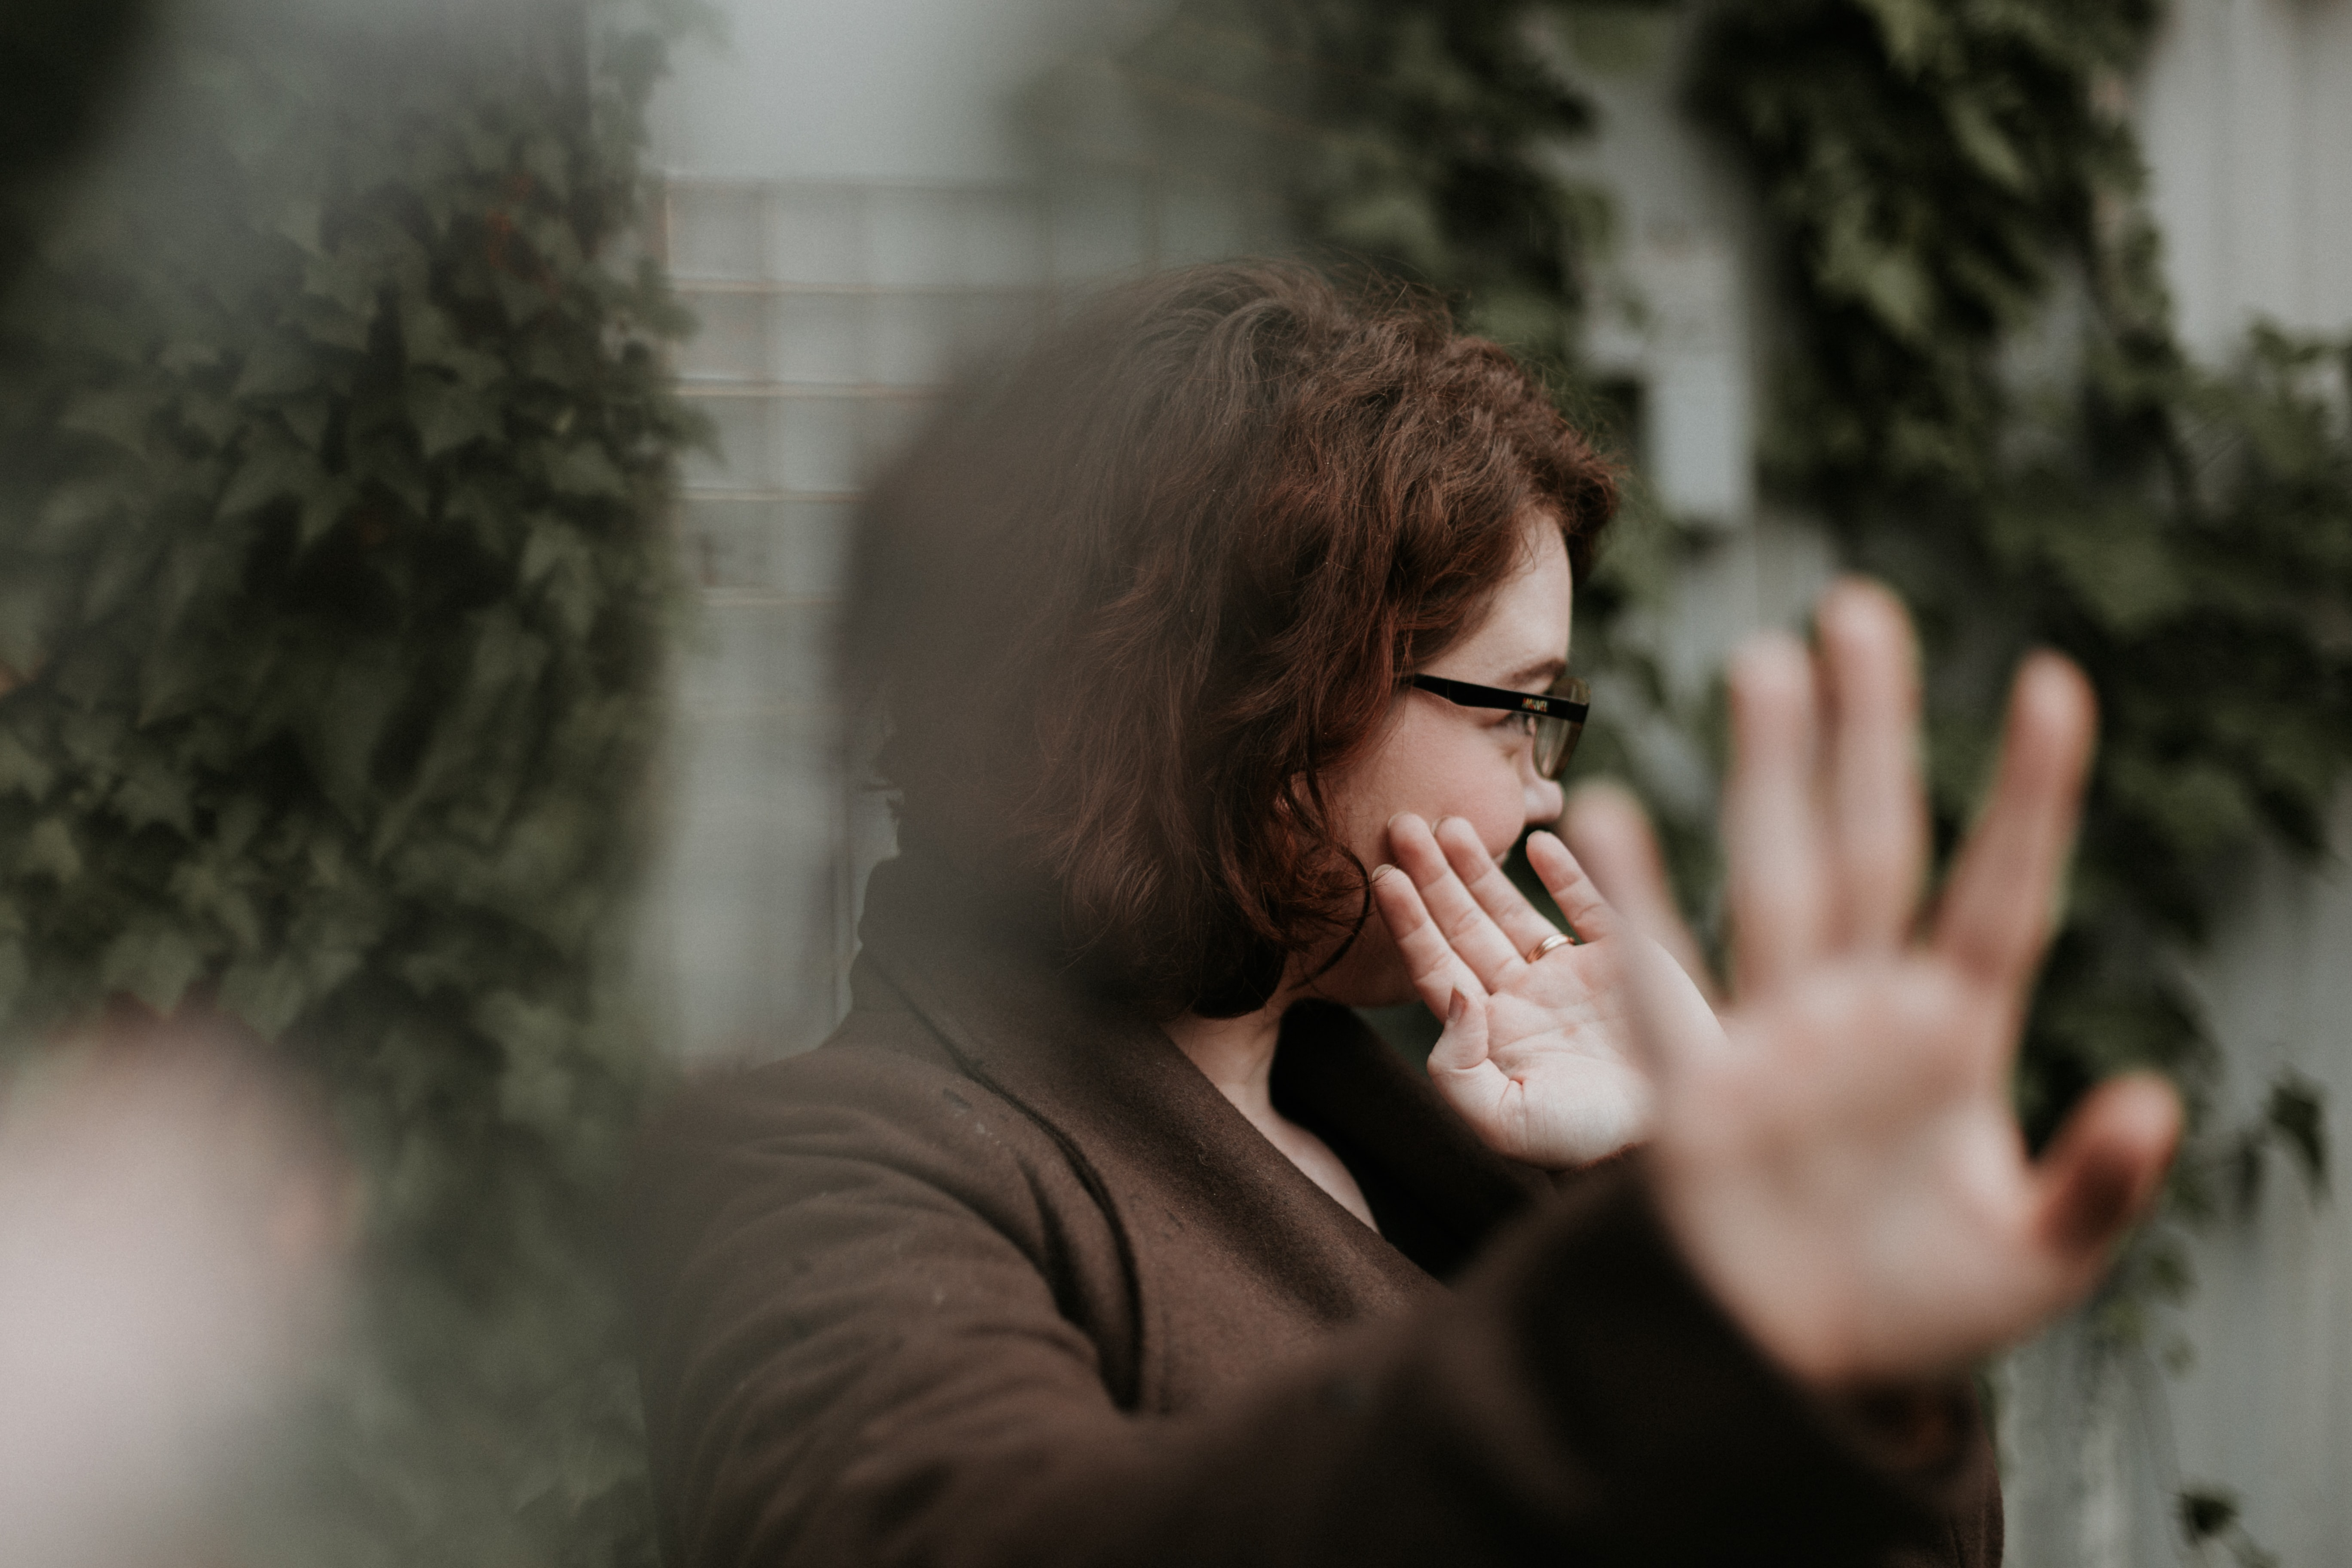 Woman in brown jacket turning away from camera; image by Priscilla Du Preez, via Unsplash.com.